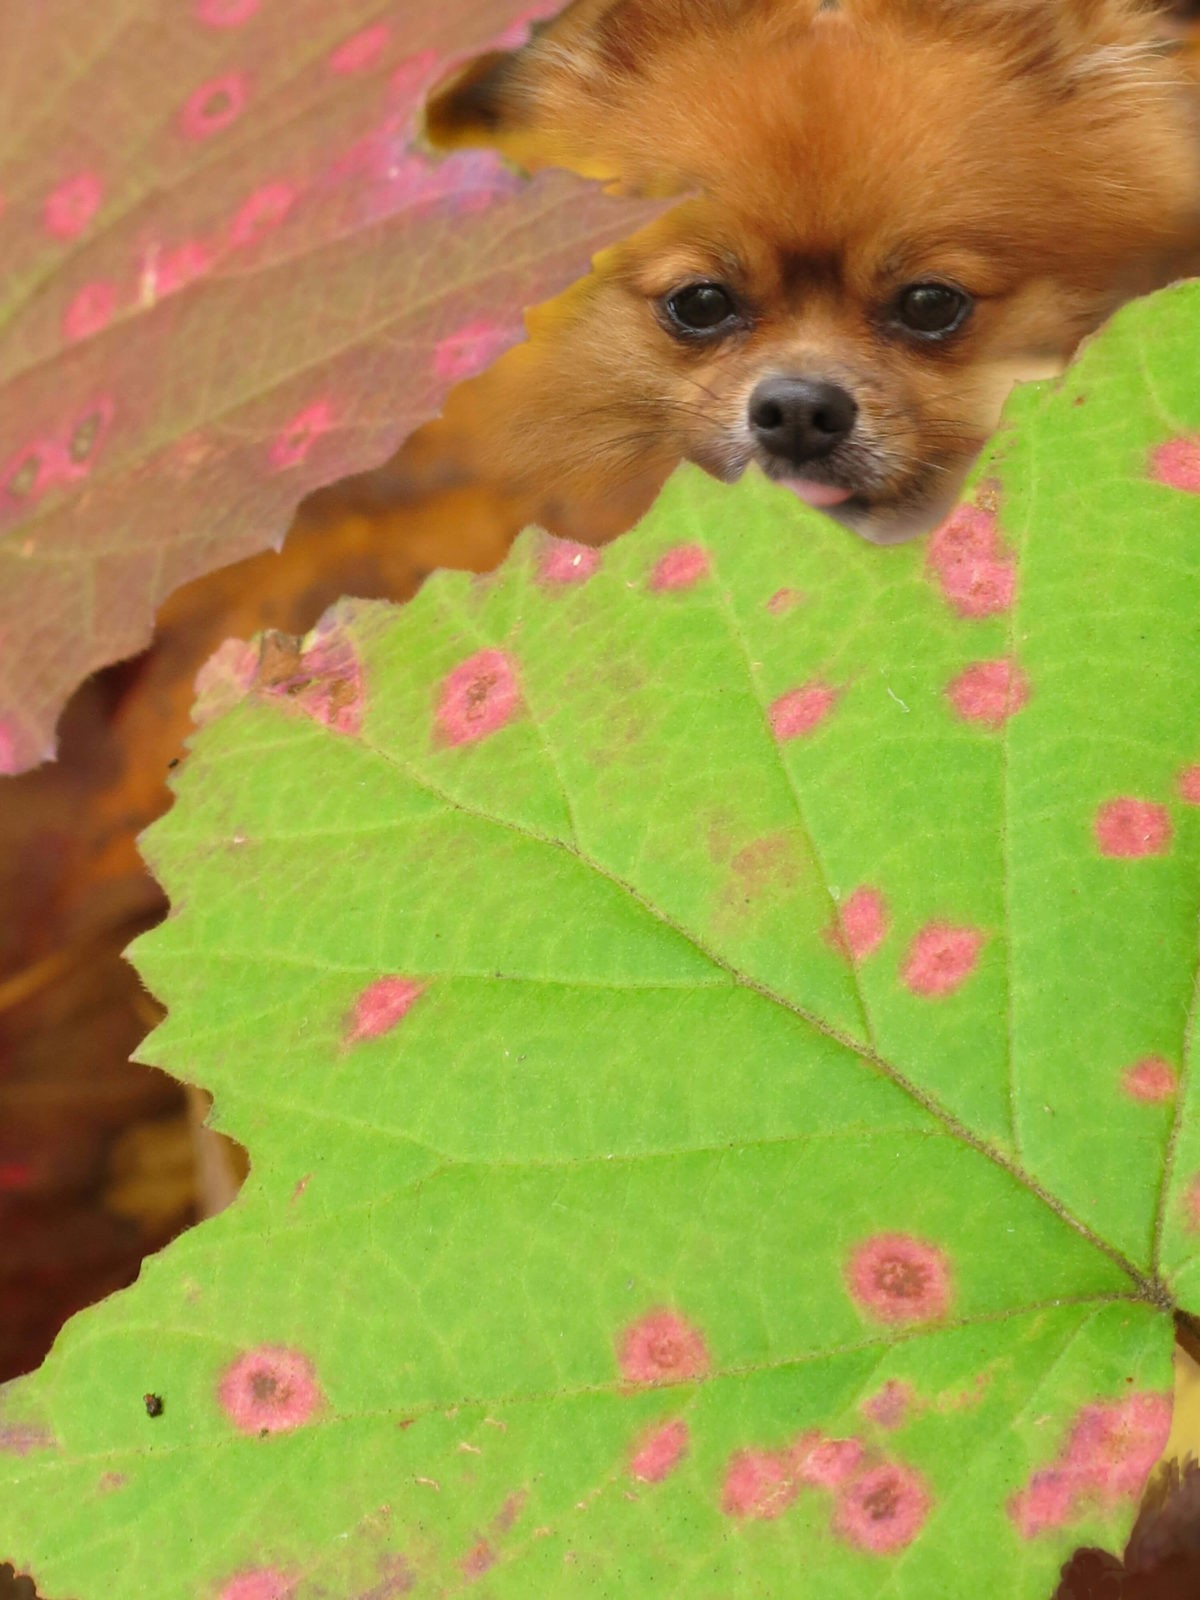 Rusty, a Pomeranian dog, peeks out between pink-spotted leaves in the forest off Comfort Road in Ithaca, New York.